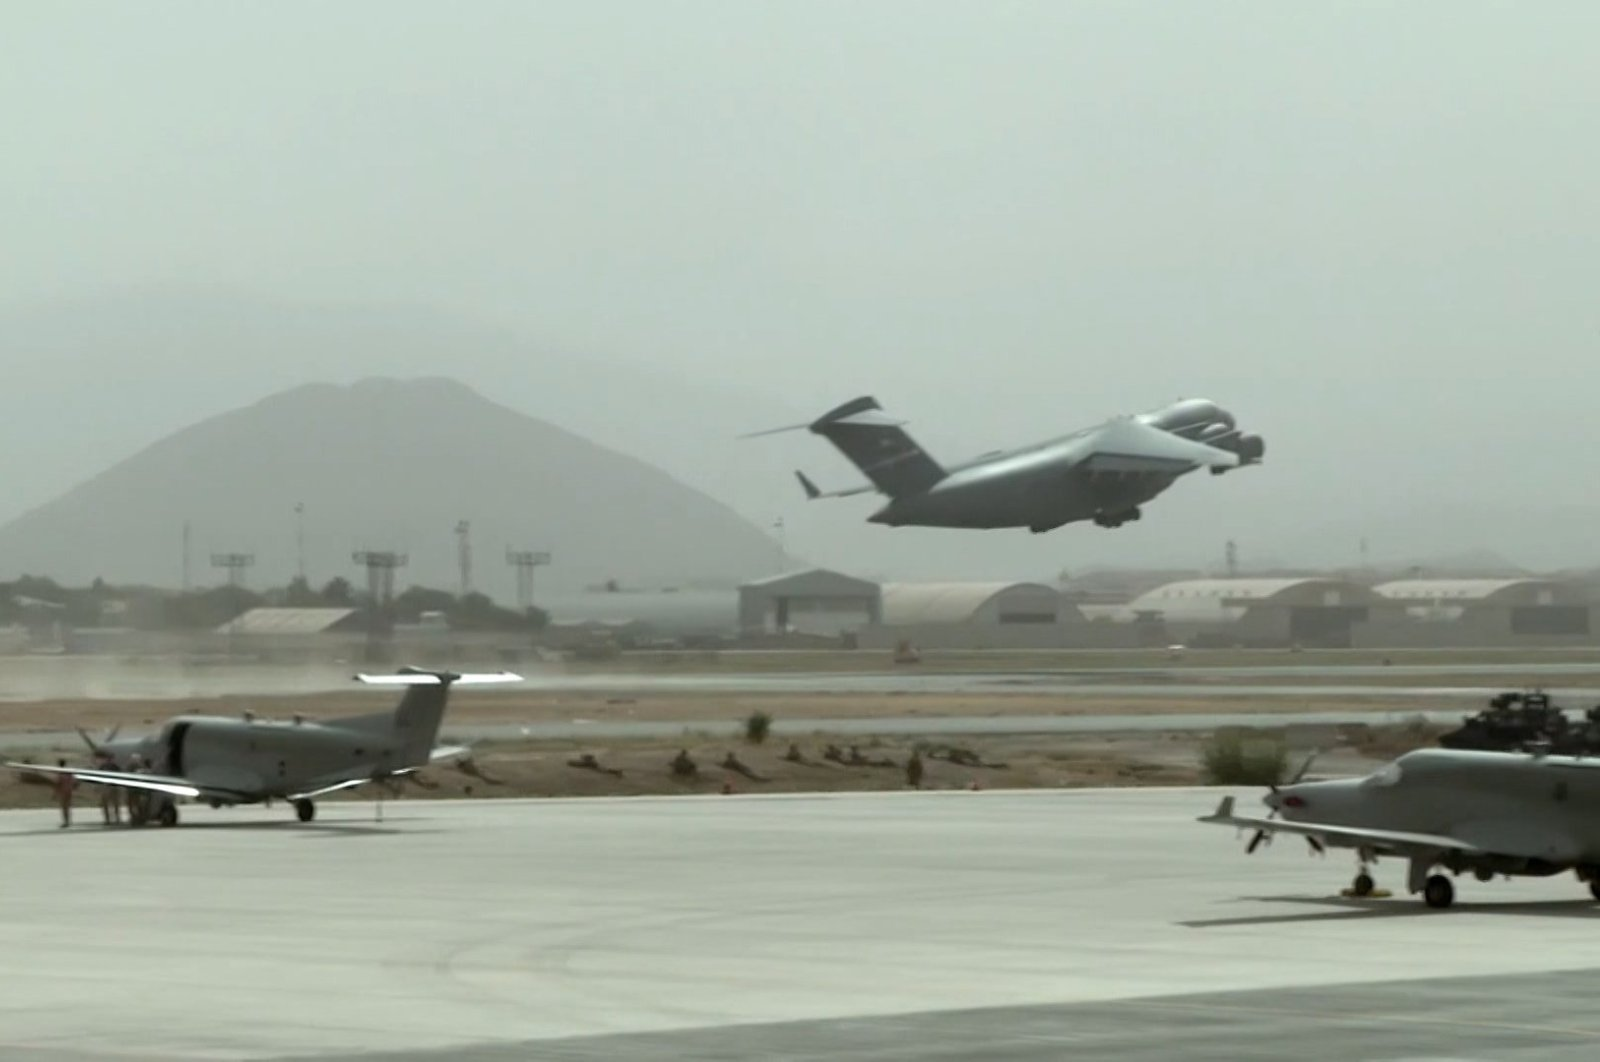 An evacuation plane takes off from Afghanistan's Kabul Hamid Karzai International Airport, Kabul, Afghanistan, Aug. 22, 2021. (Ministry of National Defense handout via DHA)